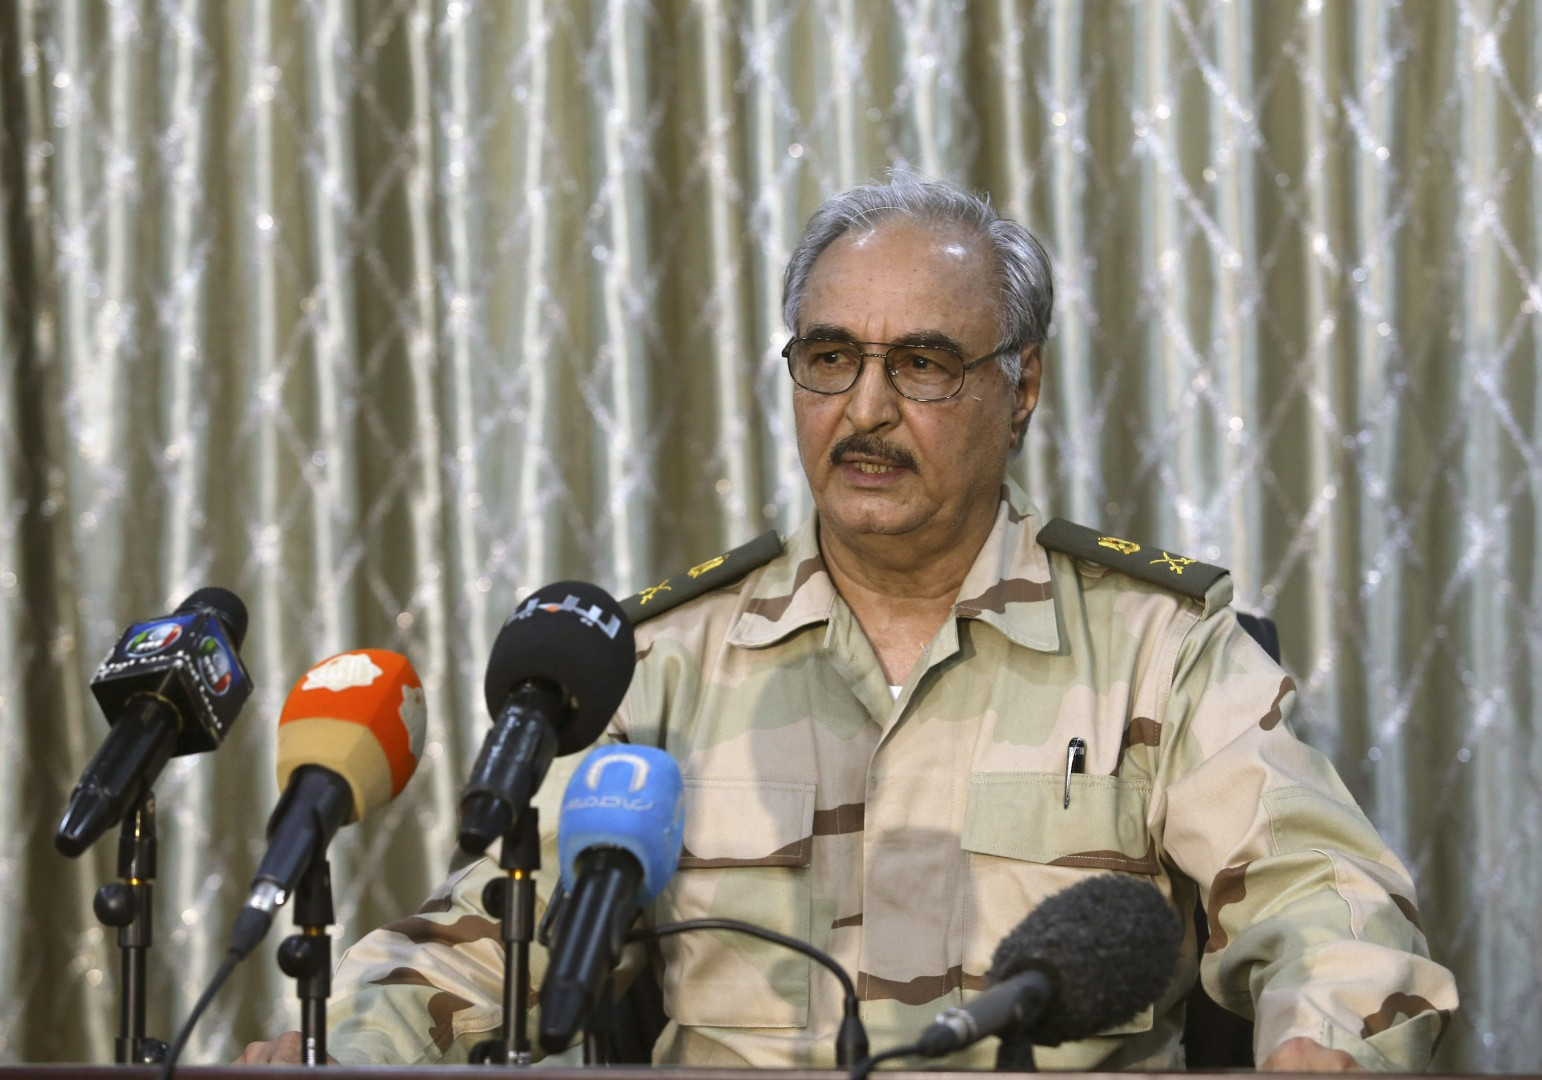 General Khalifa Haftar speaks during a news conference at a sports club in Abyar, a small town to the east of Benghazi. May 17, 2014. The self-declared Libyan National Army led by a renegade general told civilians on Saturday to leave parts of Benghazi before it launched a fresh attack on Islamist militants, a day after dozens were killed in the worst clashes in the city for months. Families could be seen packing up and driving away from western districts of the port city where Islamist militants and LNA forces led by retired General Haftar fought for hours on Friday, killing at least 43 people. REUTERS/Esam Omran Al-Fetori (LIBYA  - Tags: CIVIL UNREST MILITARY POLITICS)